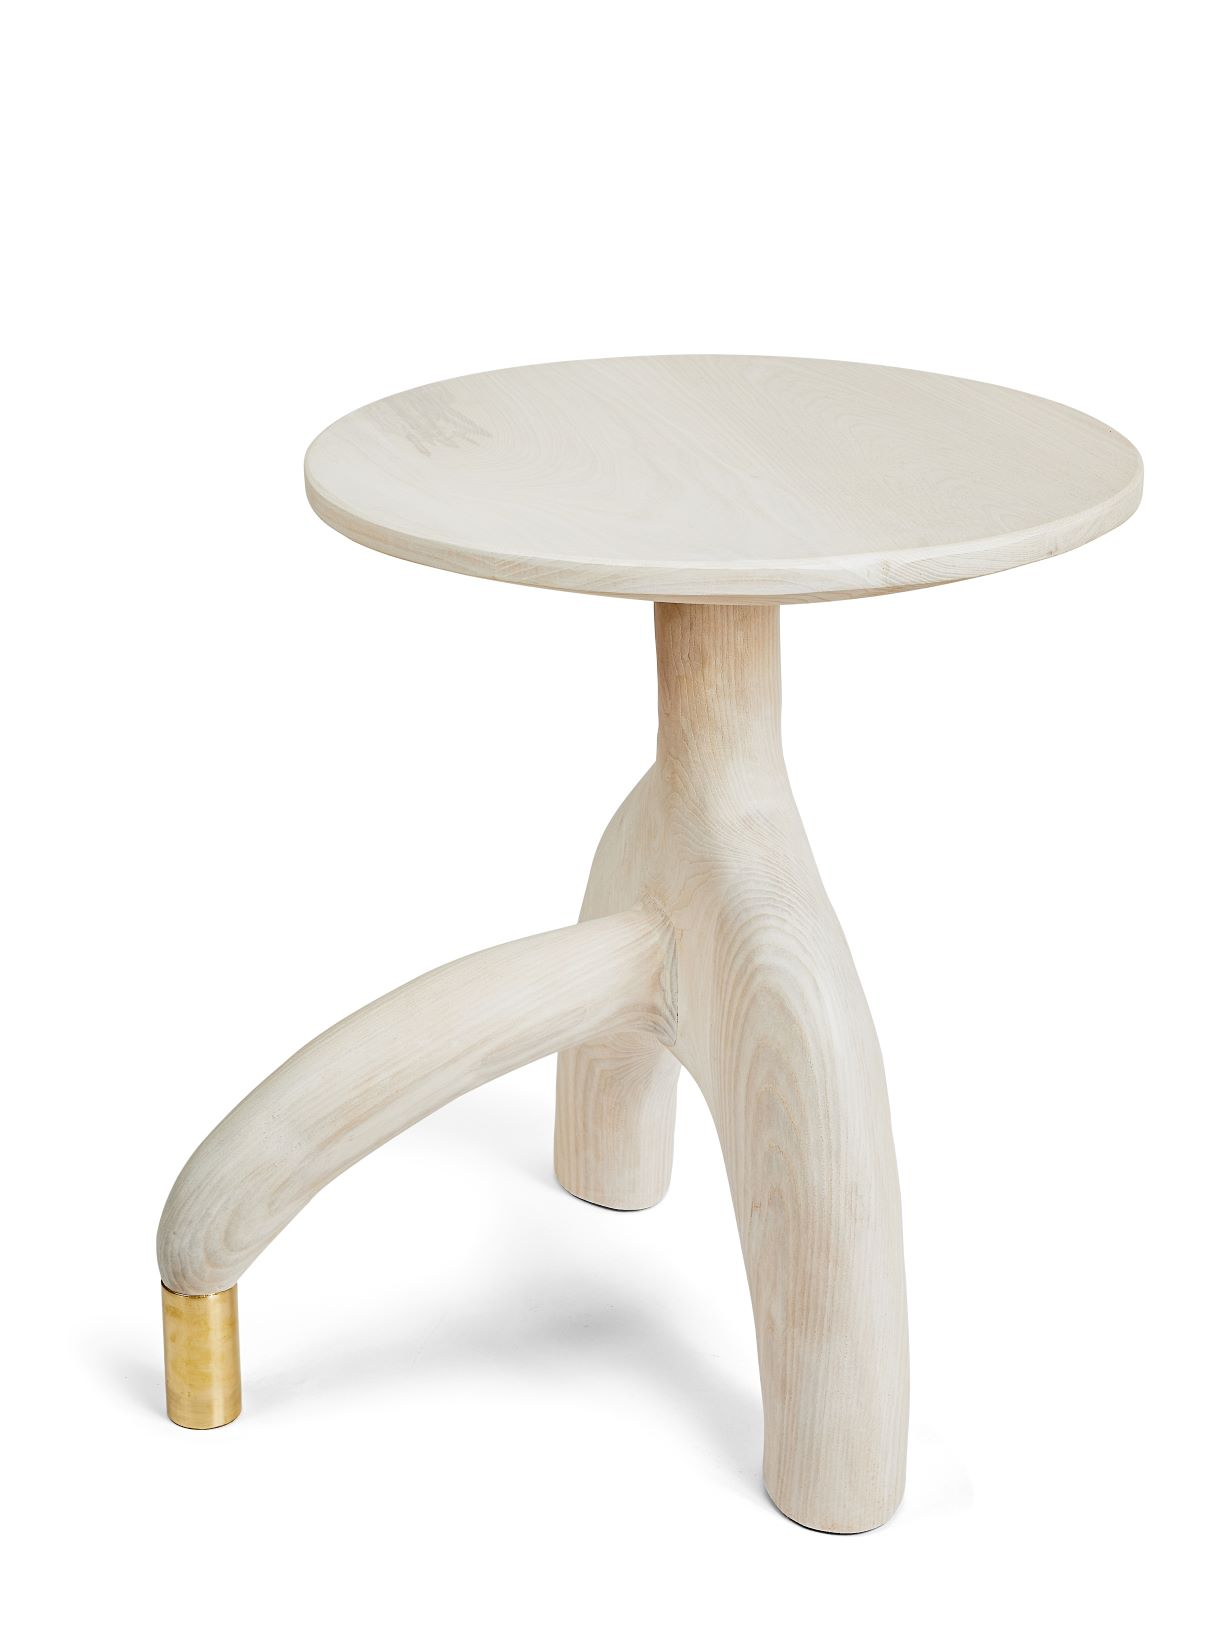 SCULPTURE 001 WHITE WASHED ASH SIDE TABLE (5).jpg